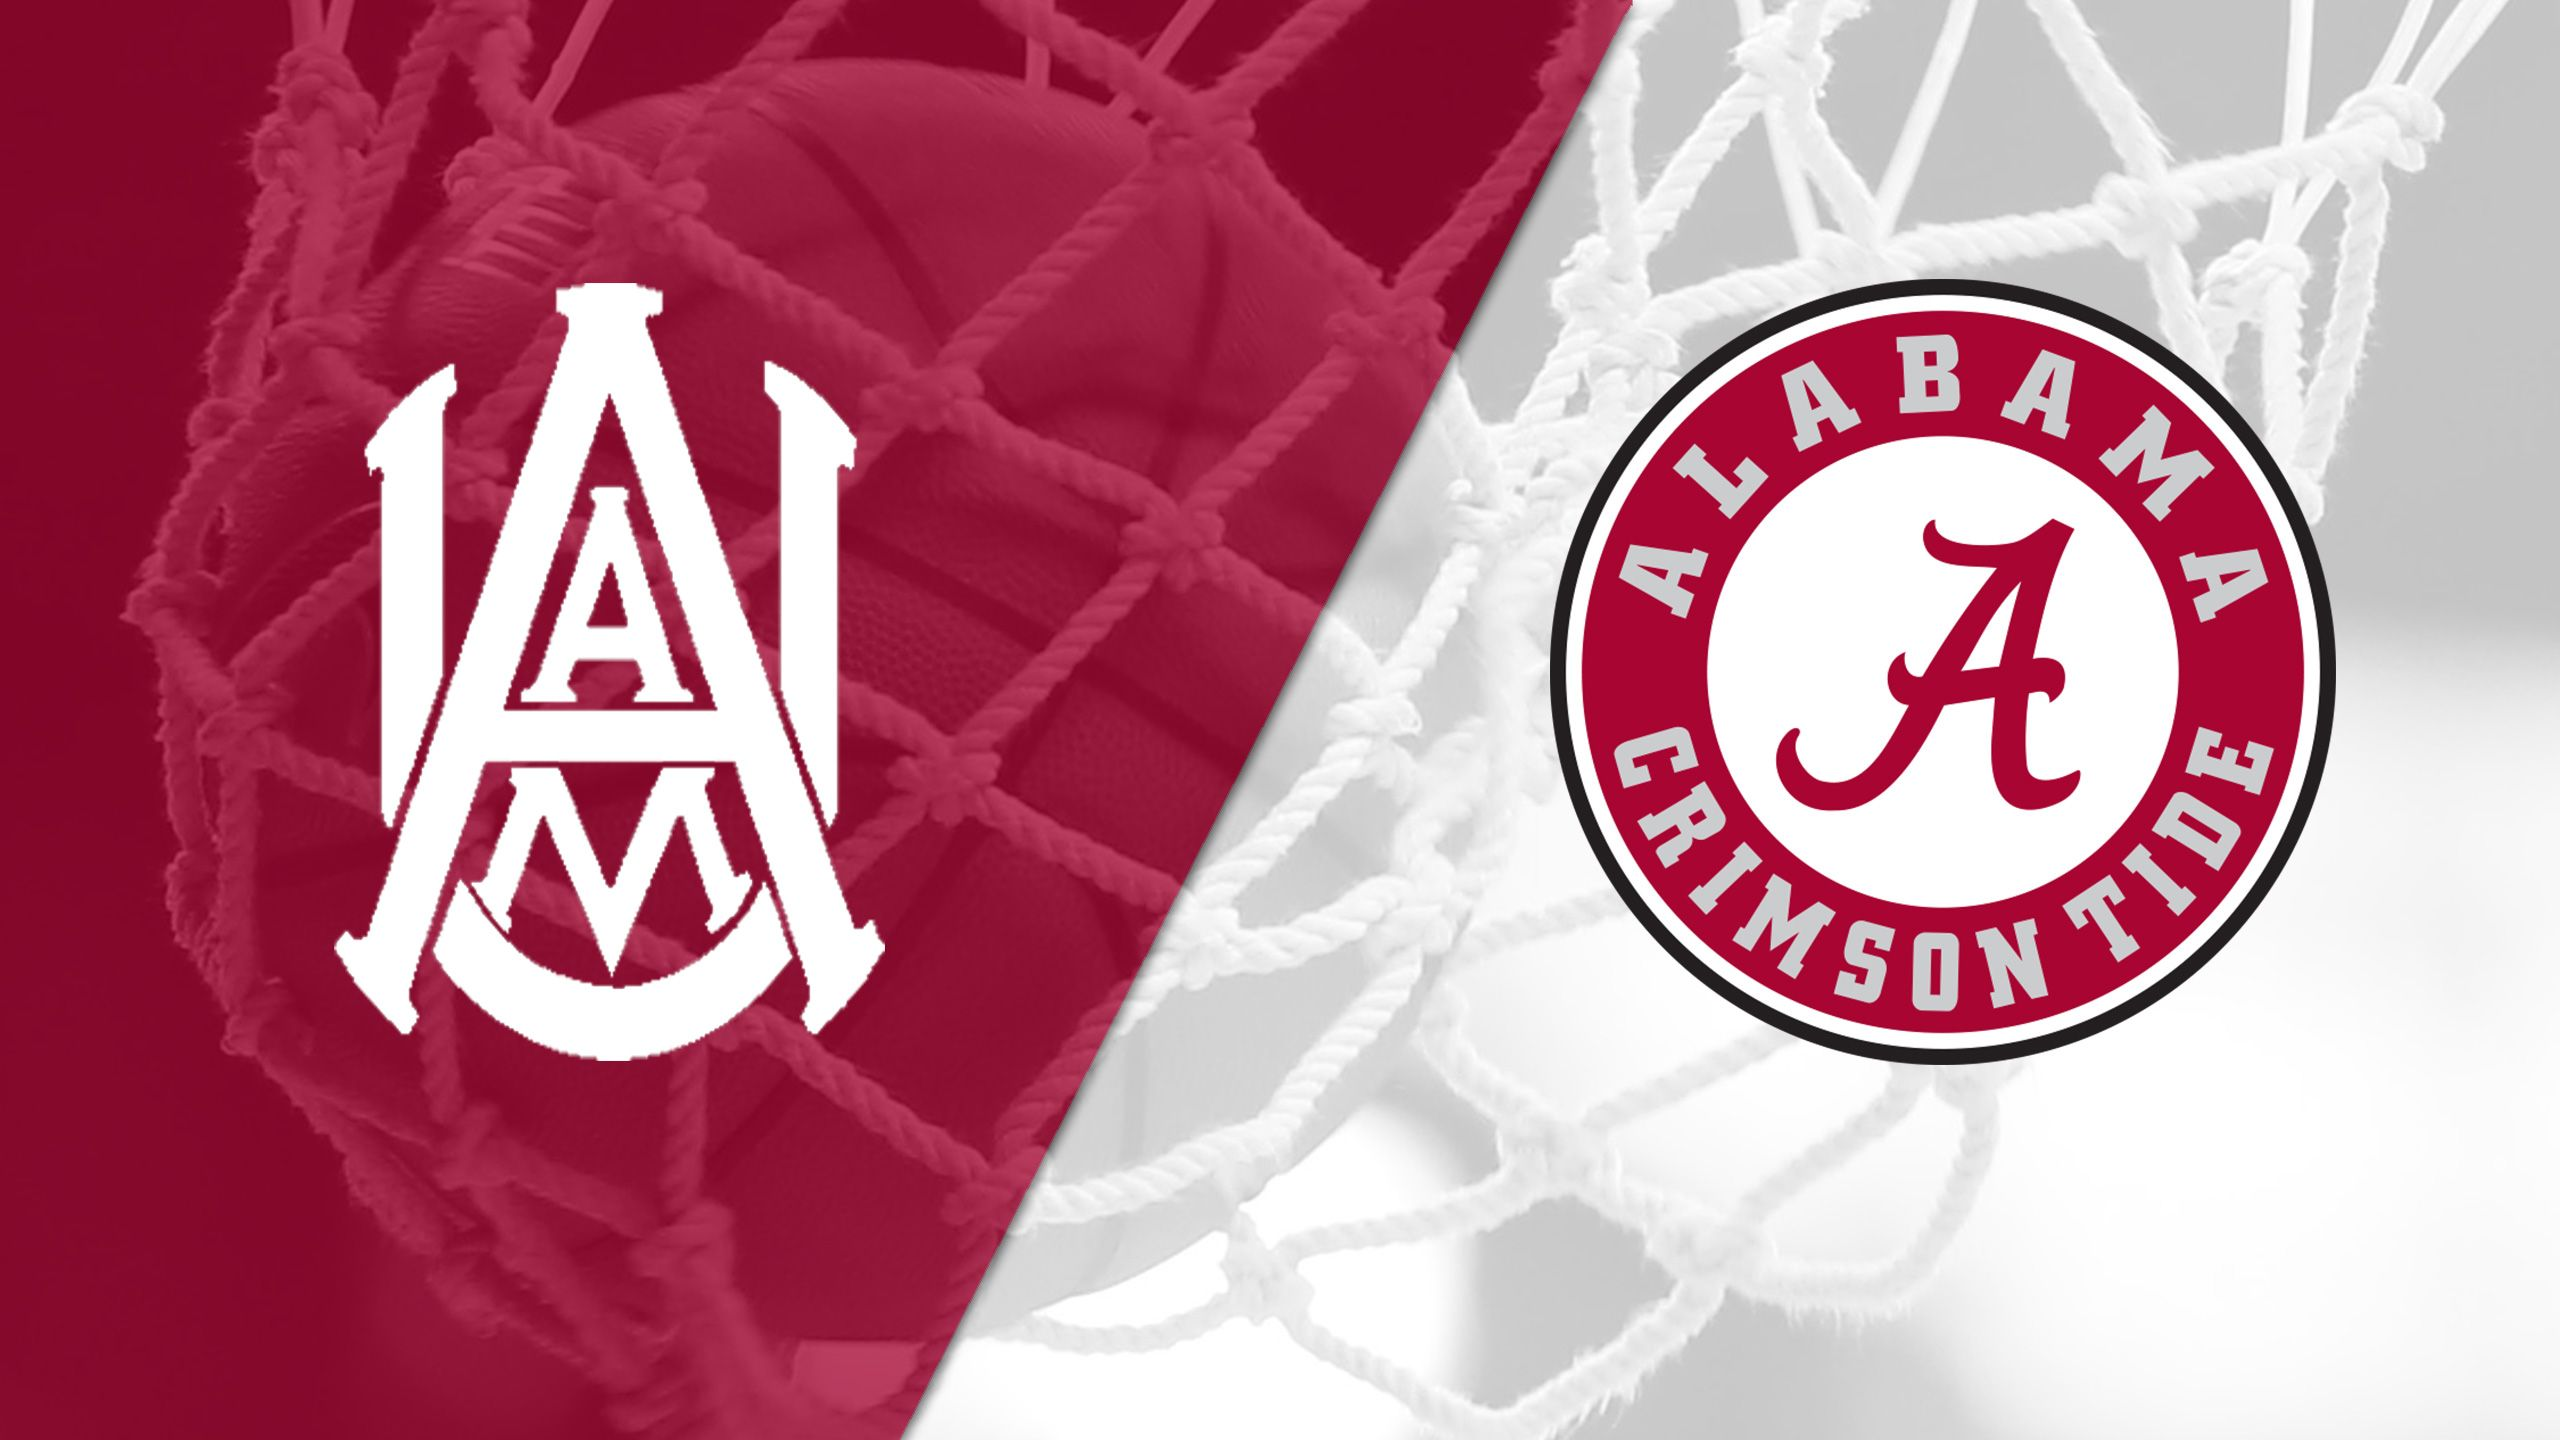 Alabama A&M vs. Alabama (W Basketball)